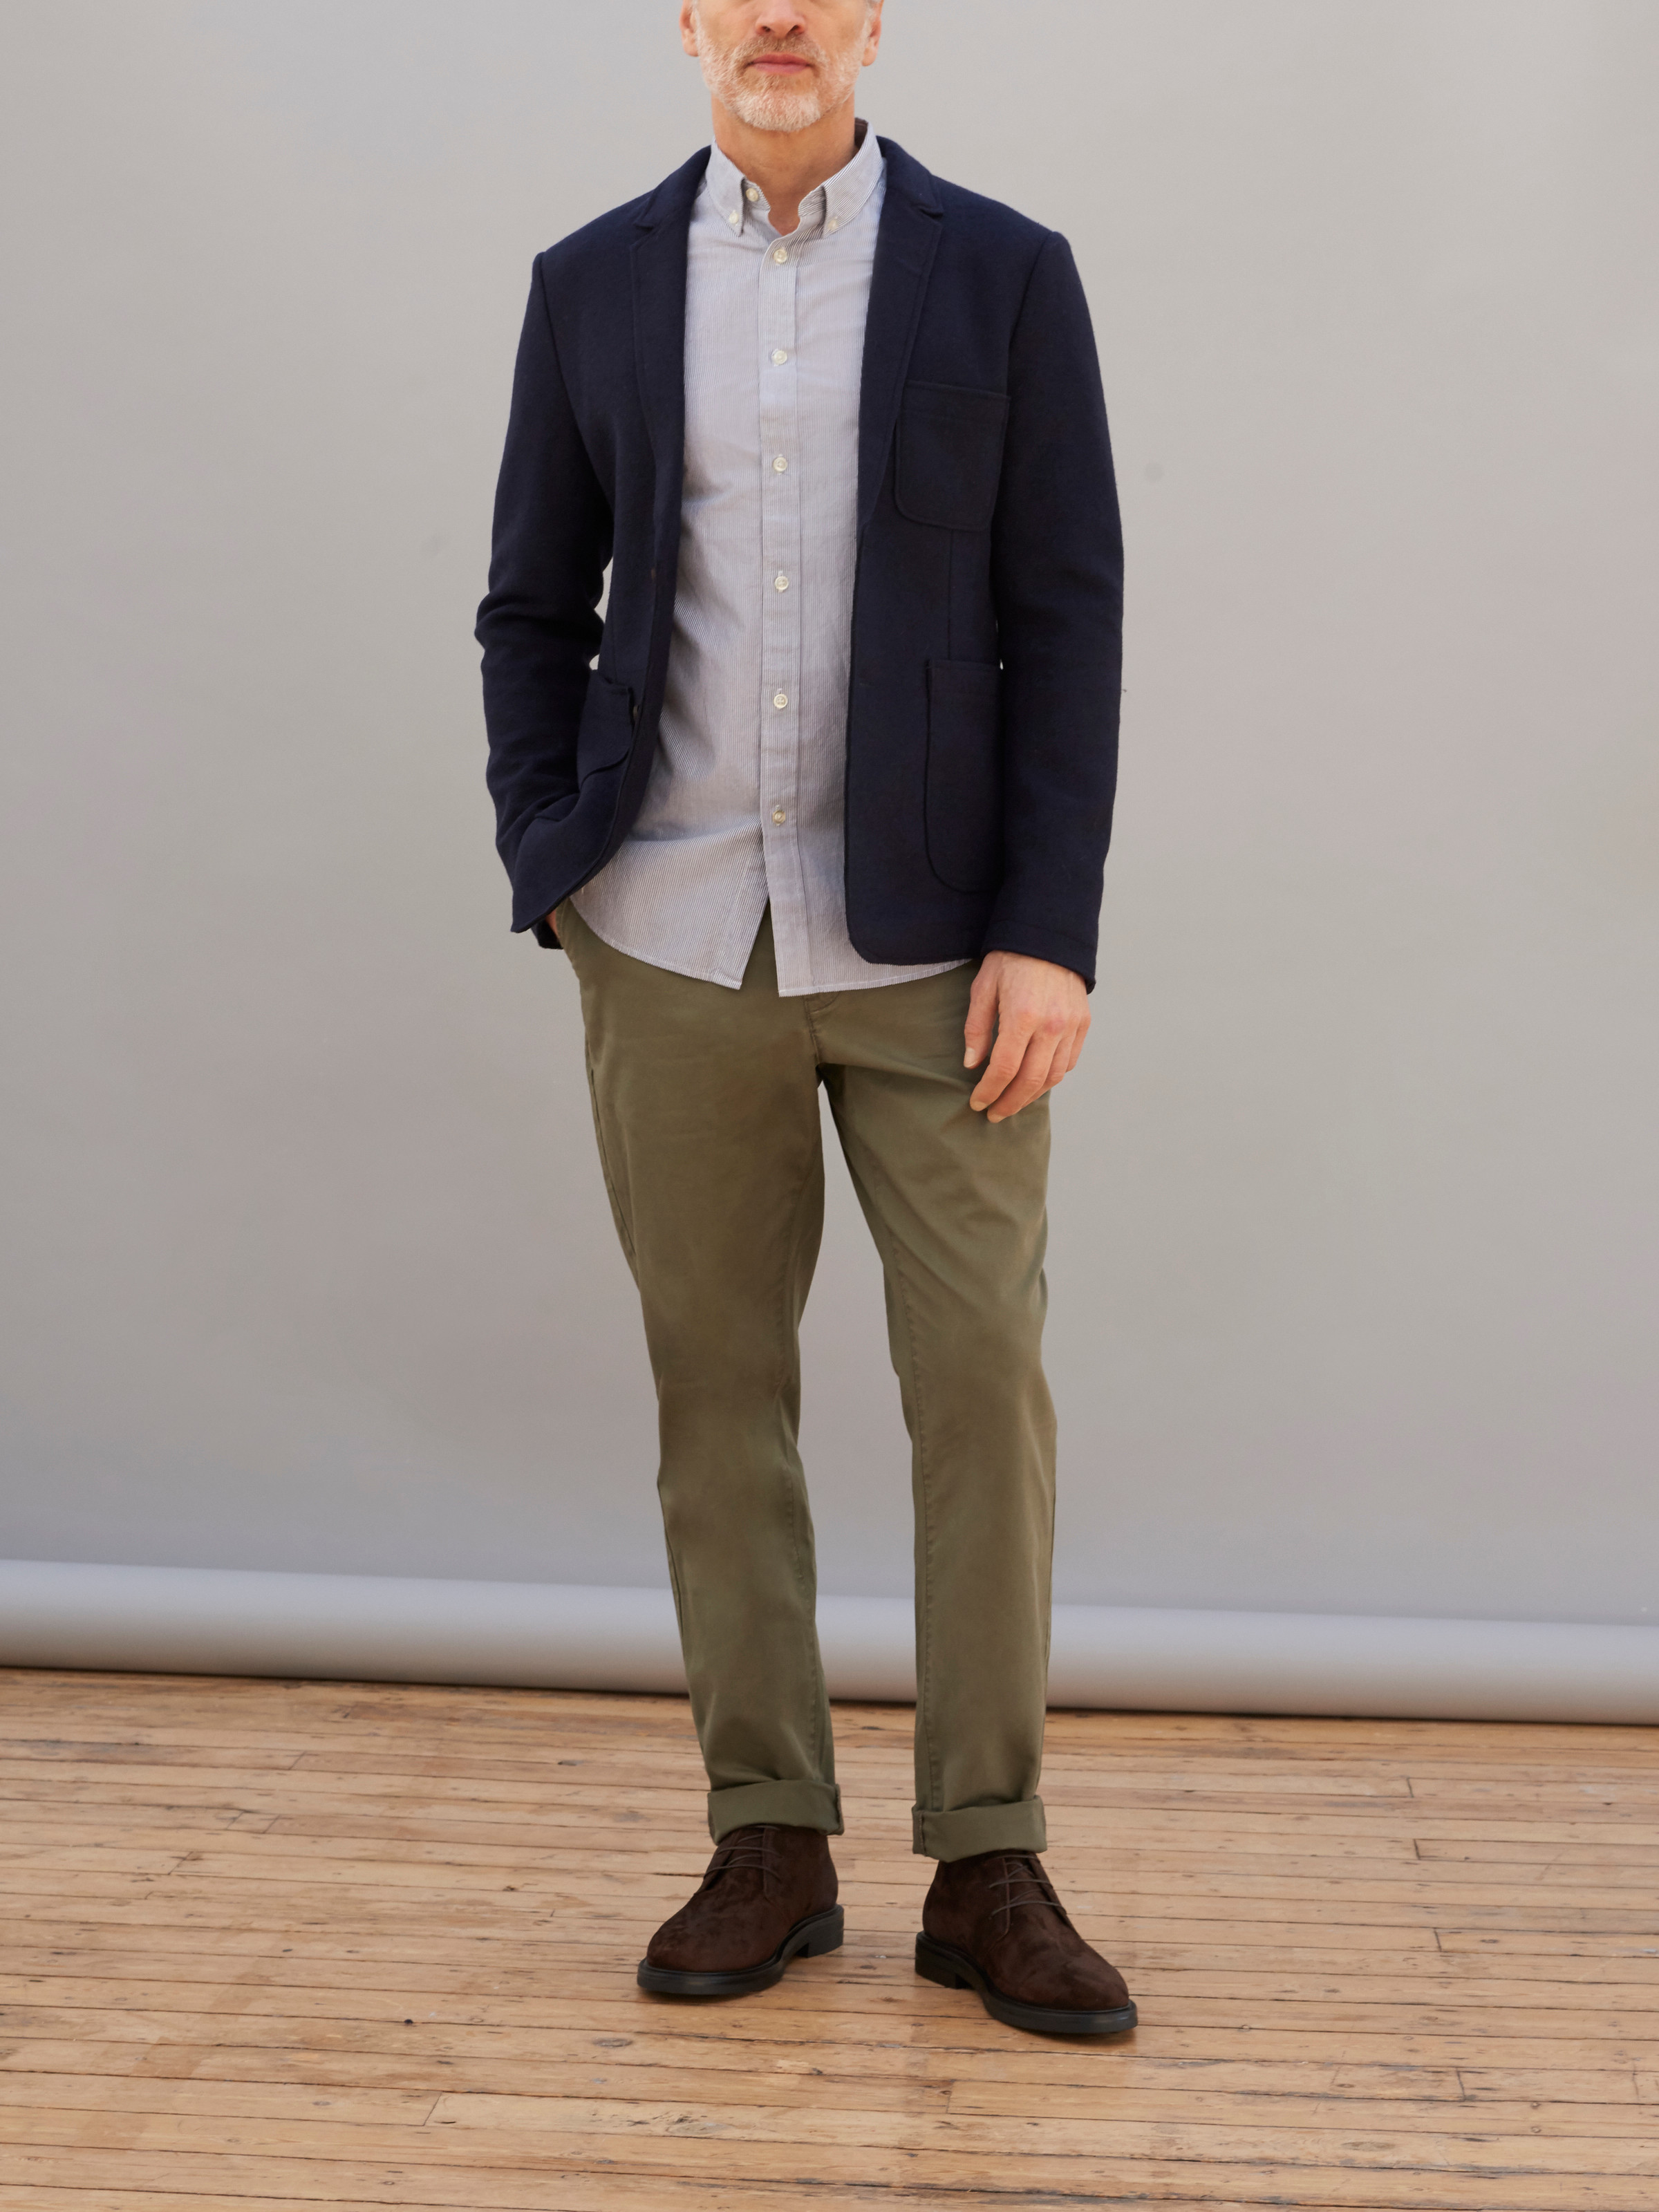 Men's outfit idea for 2021 with textured blazer, striped casual shirt, coloured chinos, brown desert boots. Suitable for spring and autumn.